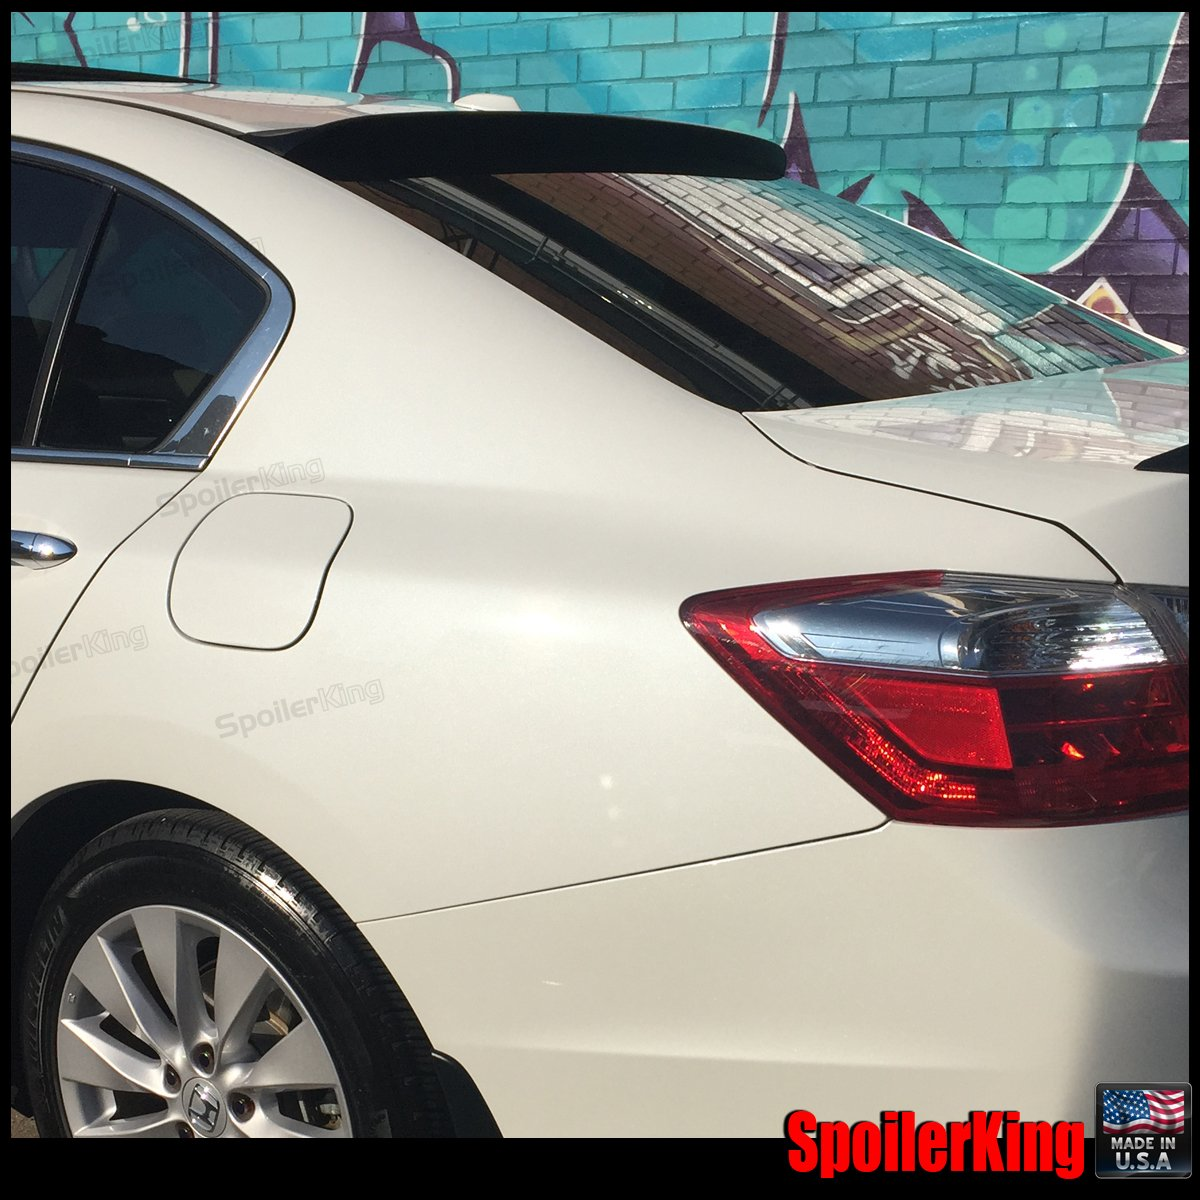 Compatible with Honda Accord 4dr 2013-2017 Spoiler King Roof Spoiler XL 380R